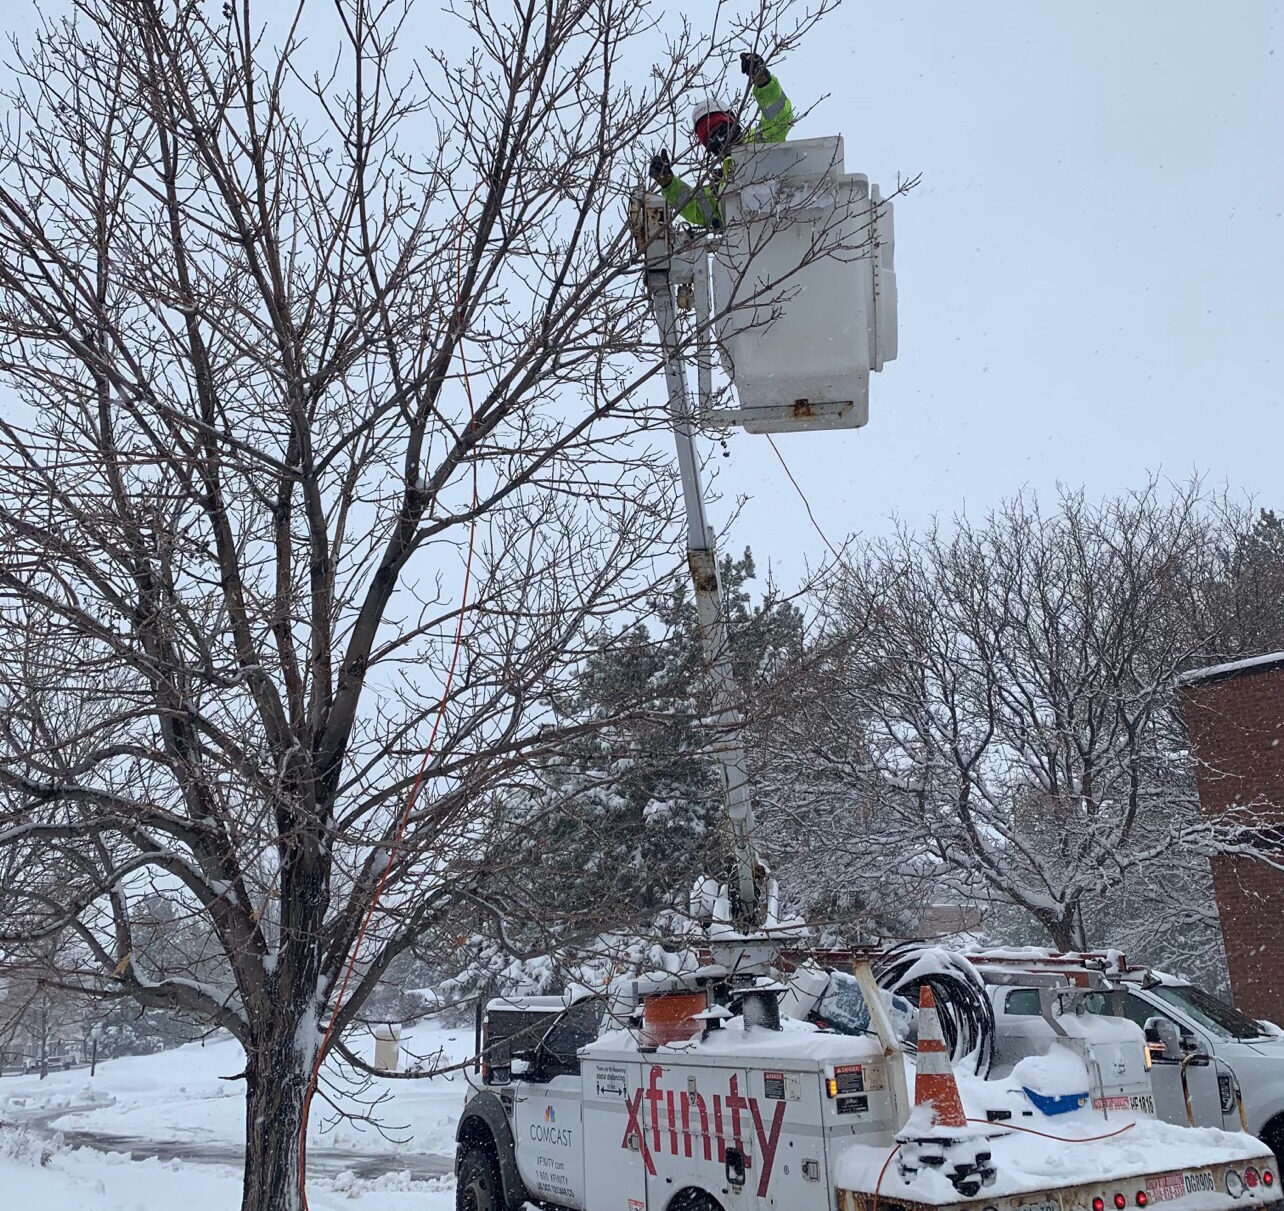 Comcast technician working after a snowstorm.